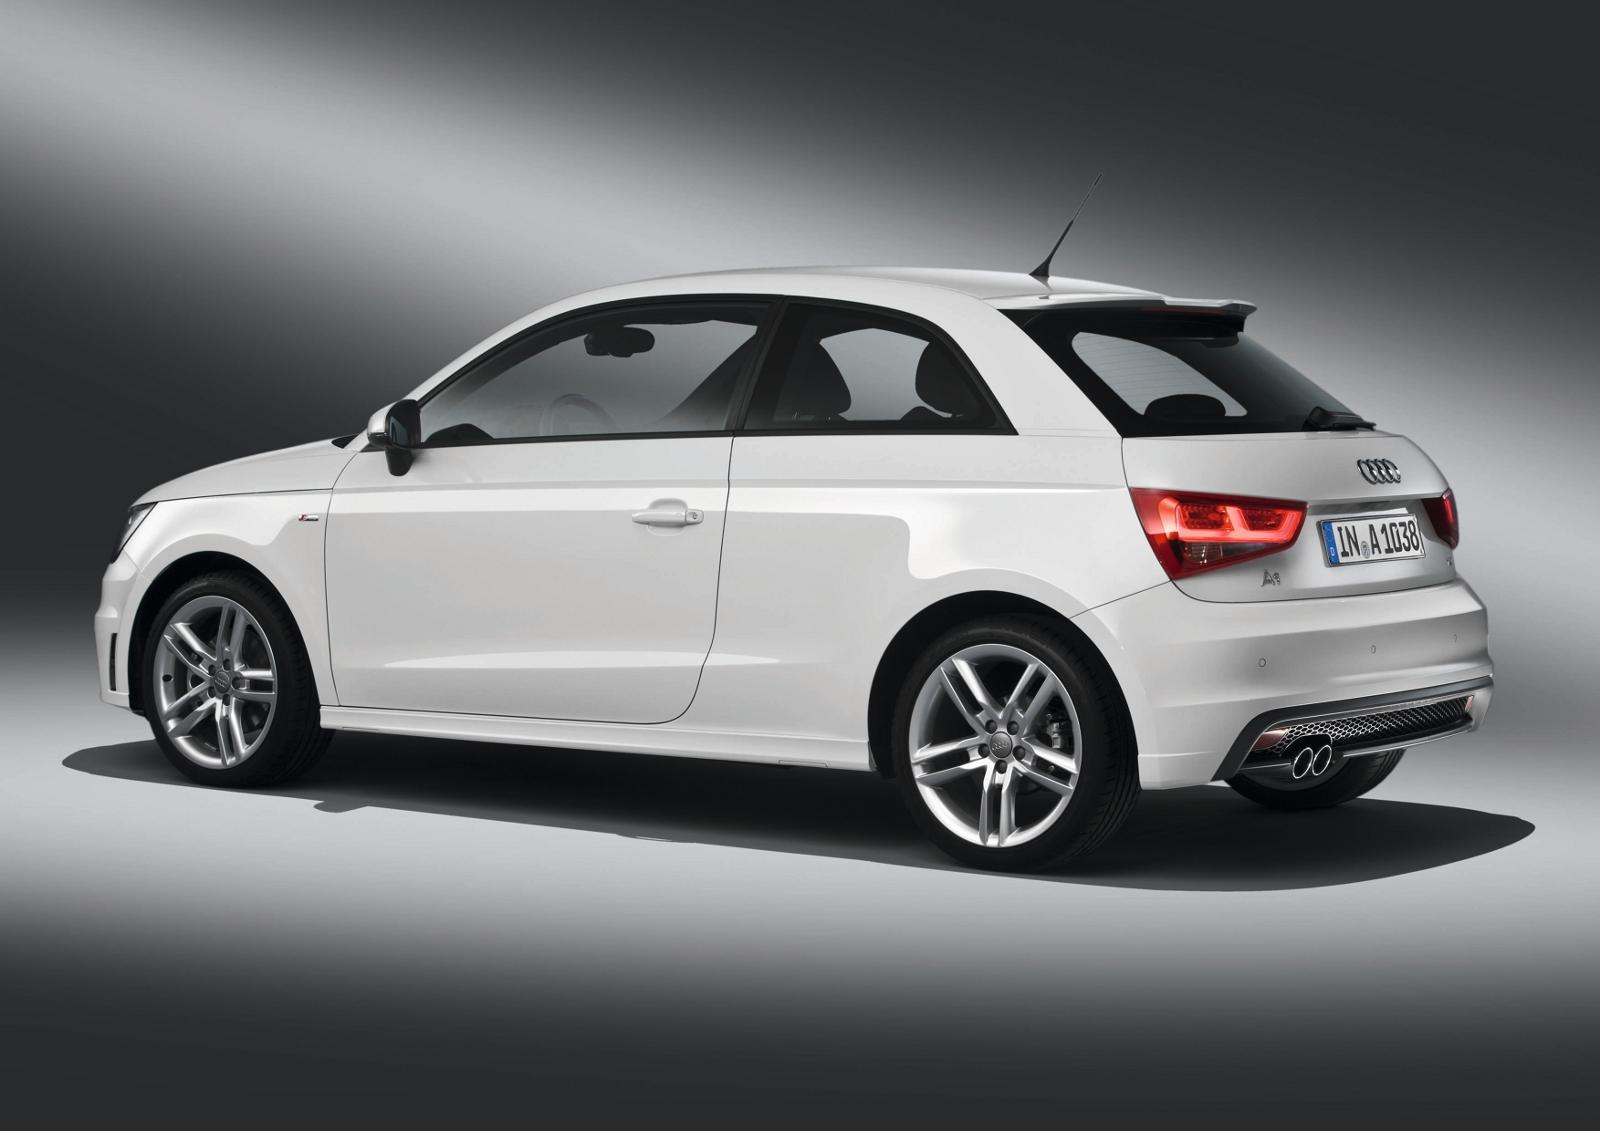 2010 Audi A1 Photos, Informations, Articles - BestCarMag.com